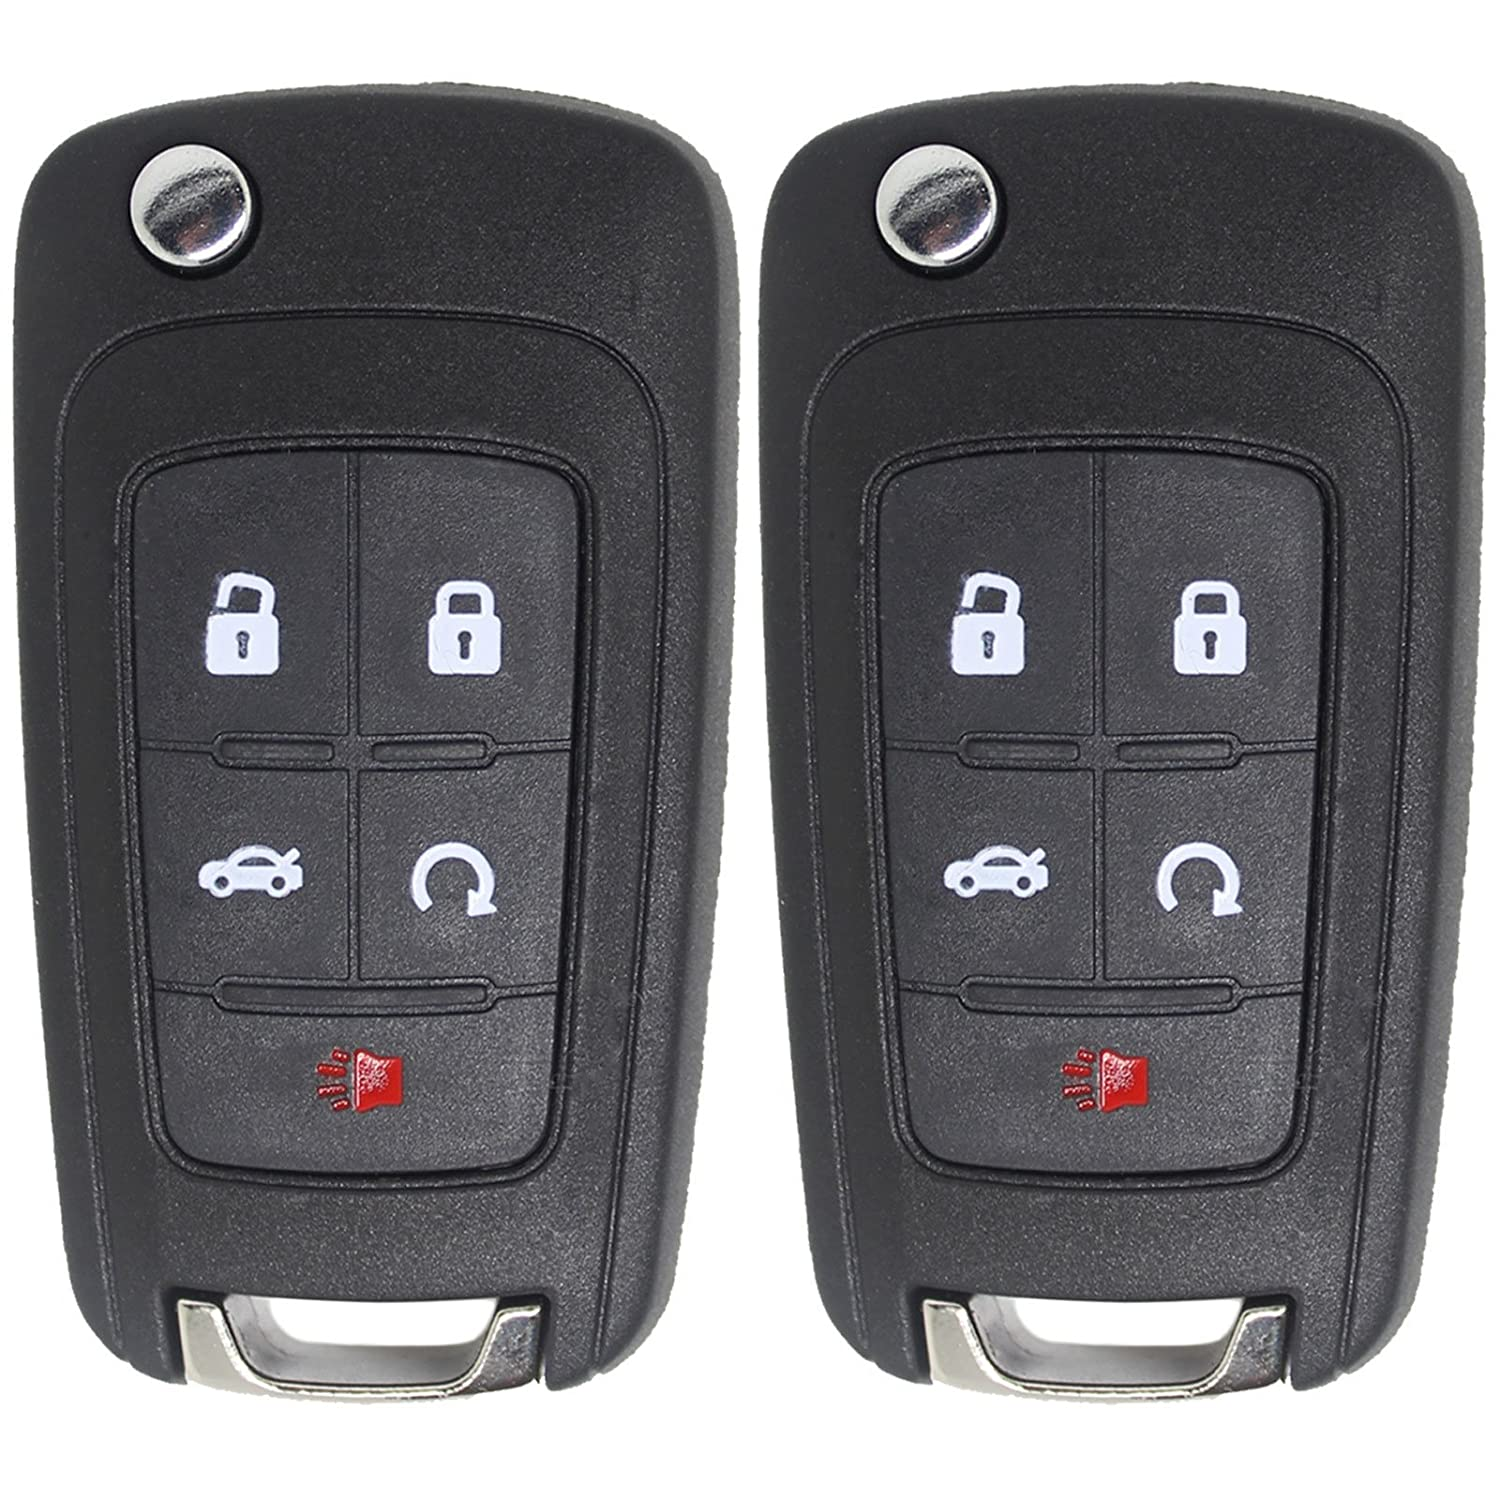 OEM Chevrolet Malibu Keyless Entry and Flip Key 5 Button Remote OHT01060512 for 2013 to 2015 Chevy Malibu